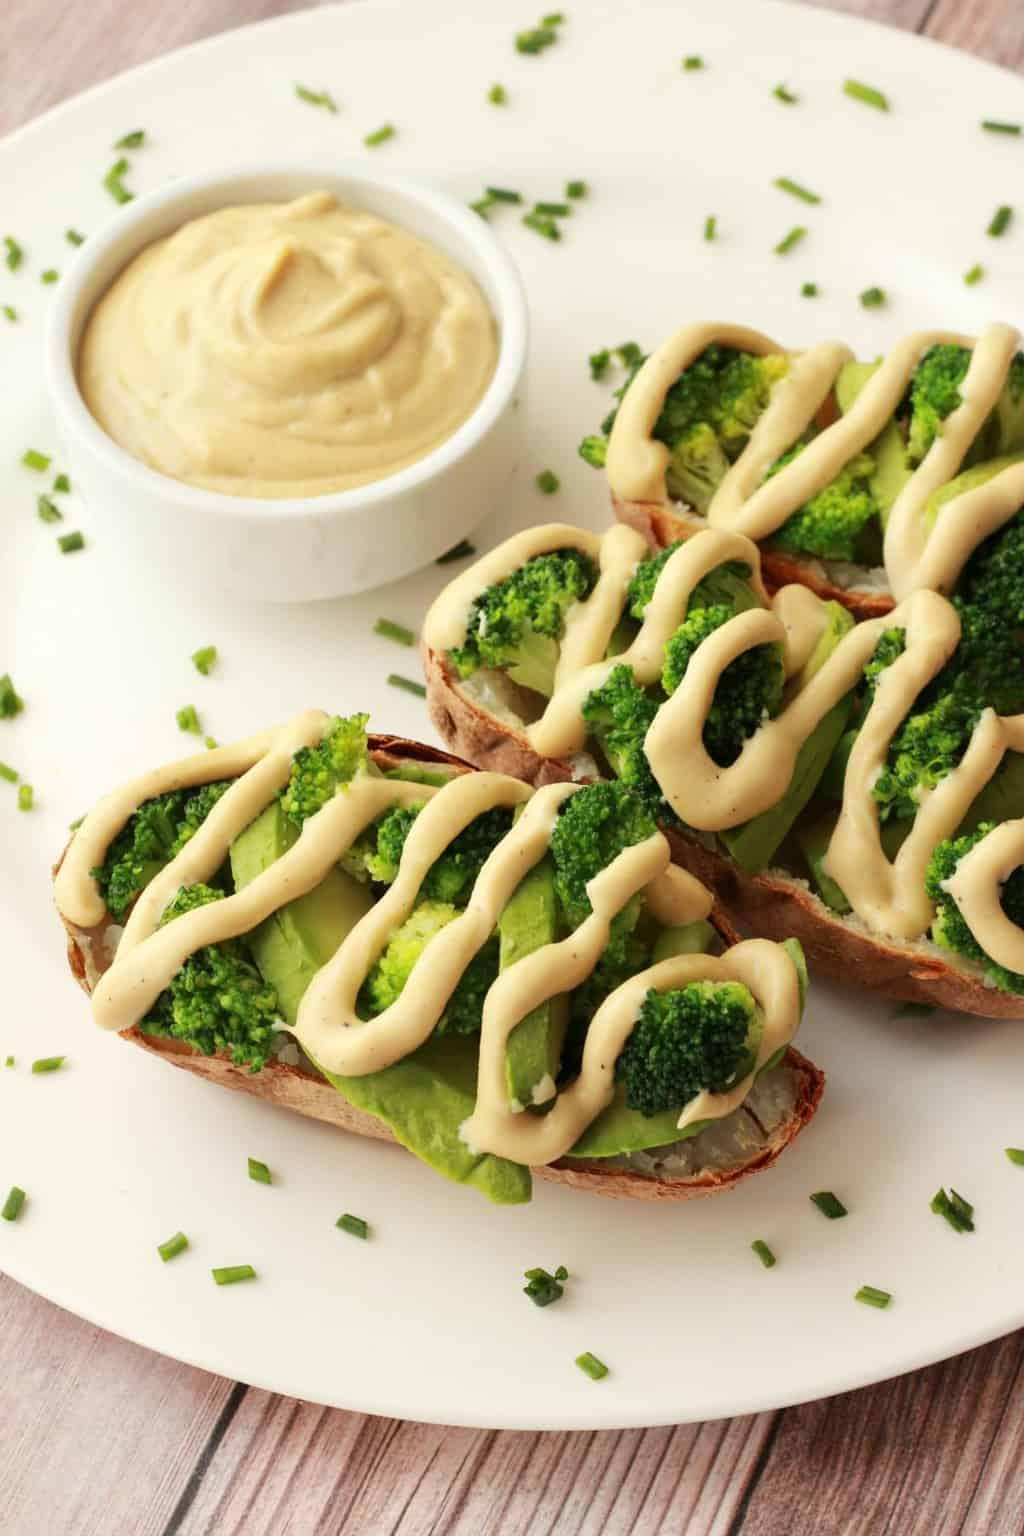 Cashew cheese sauce drizzled over baked potatoes and broccoli on a white plate.